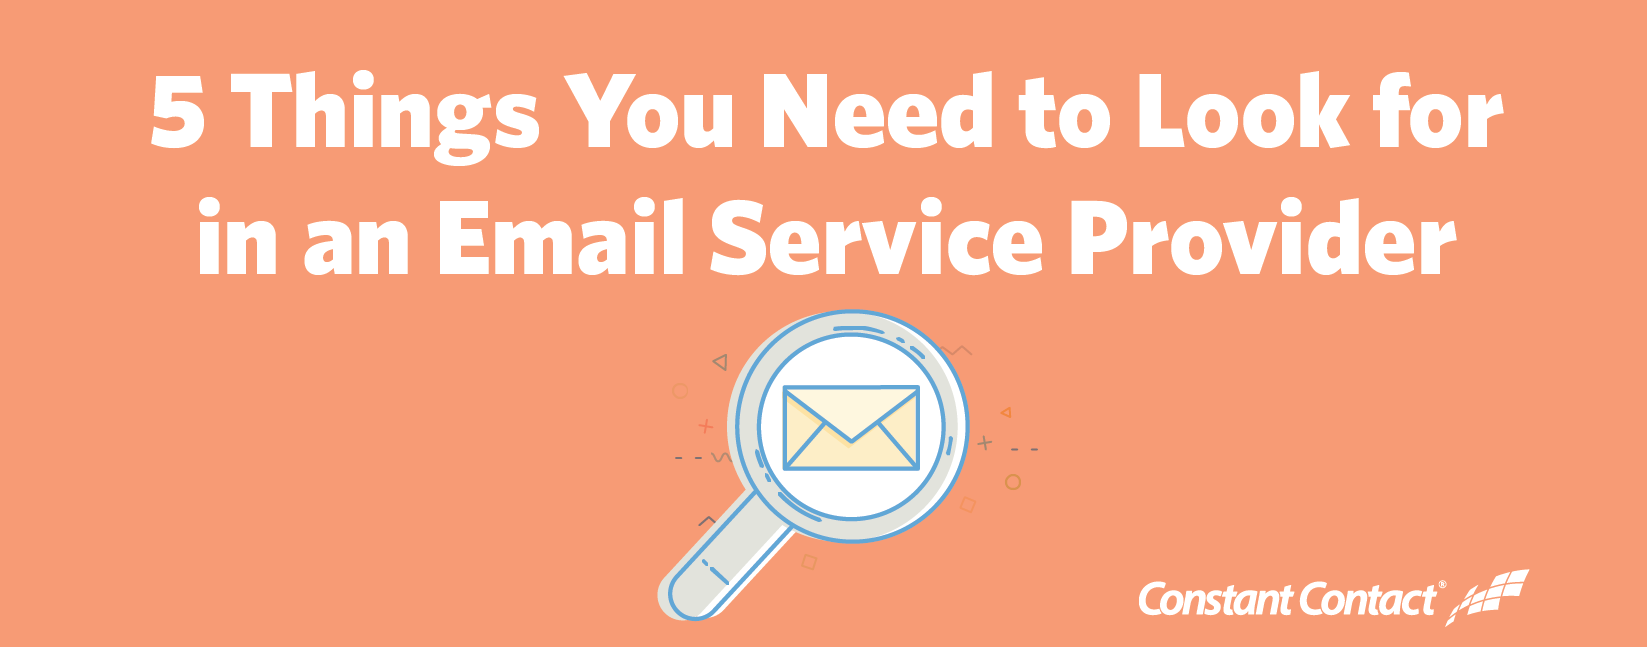 5 Things You Need to Look for in an Email Service Provider